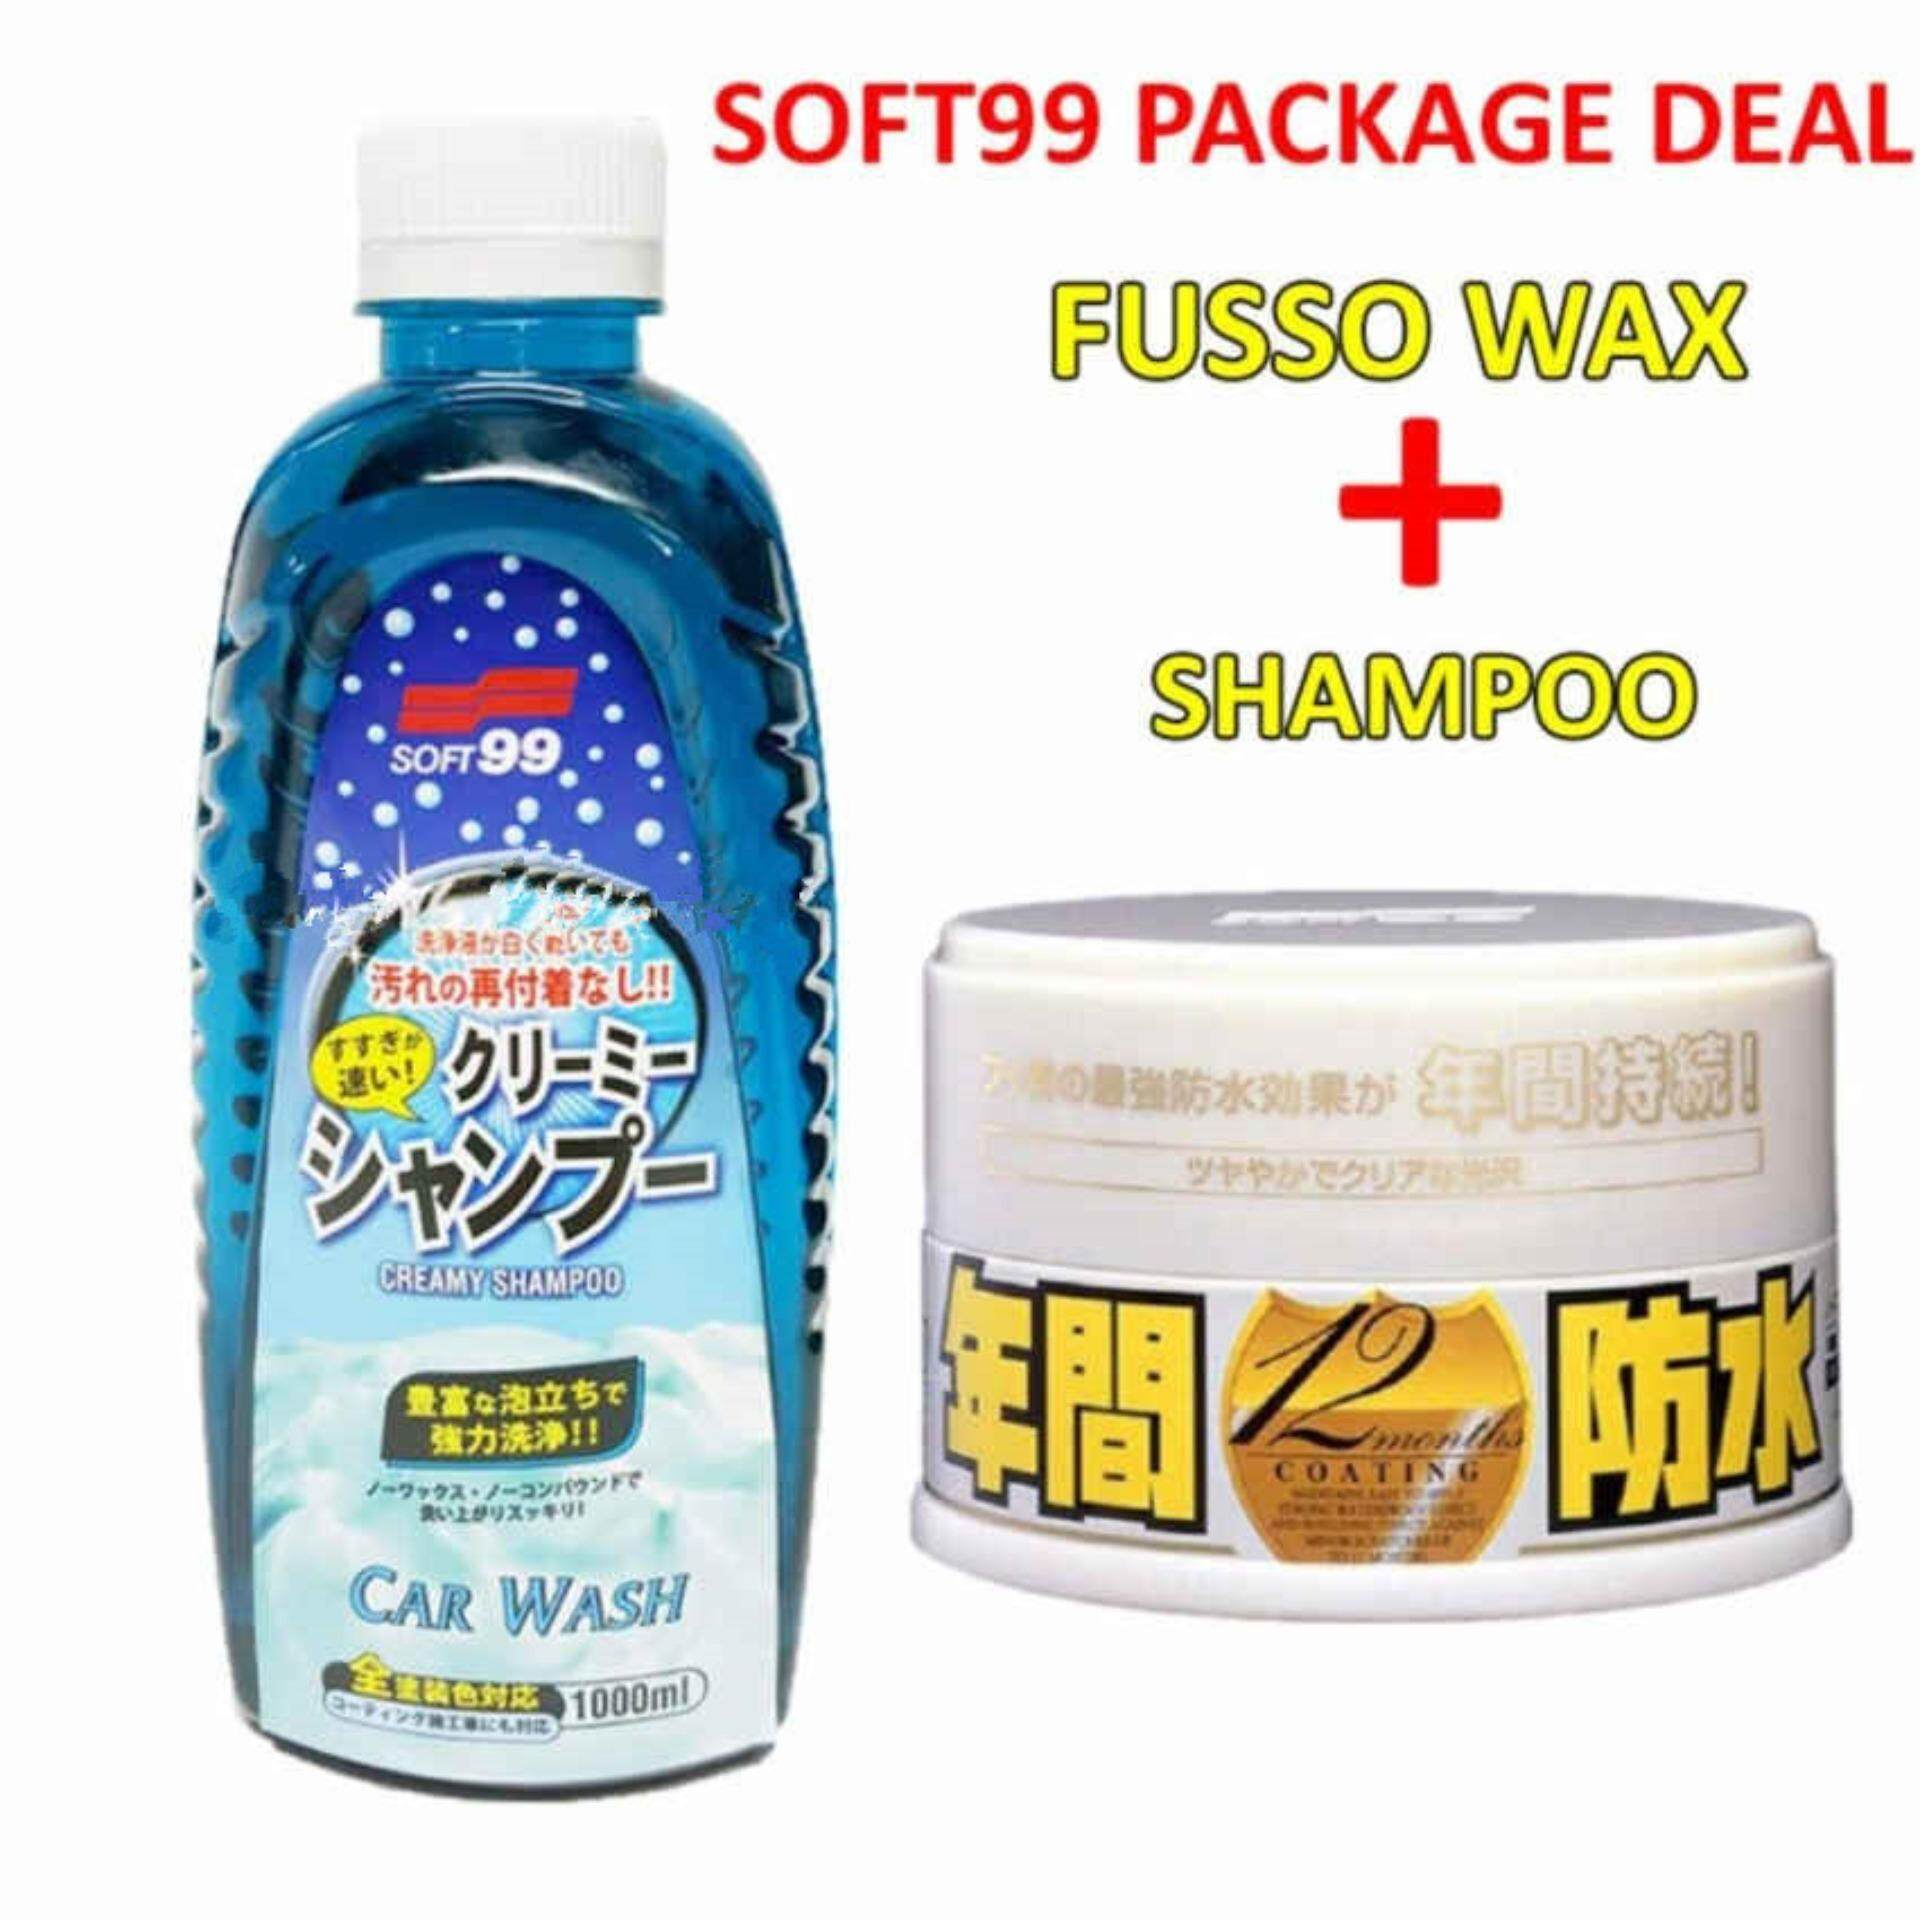 [PACKAGE DEAL] Soft 99 Fusso Coat Light Color Wax + Car Wash Creamy Shampoo (1000ML)